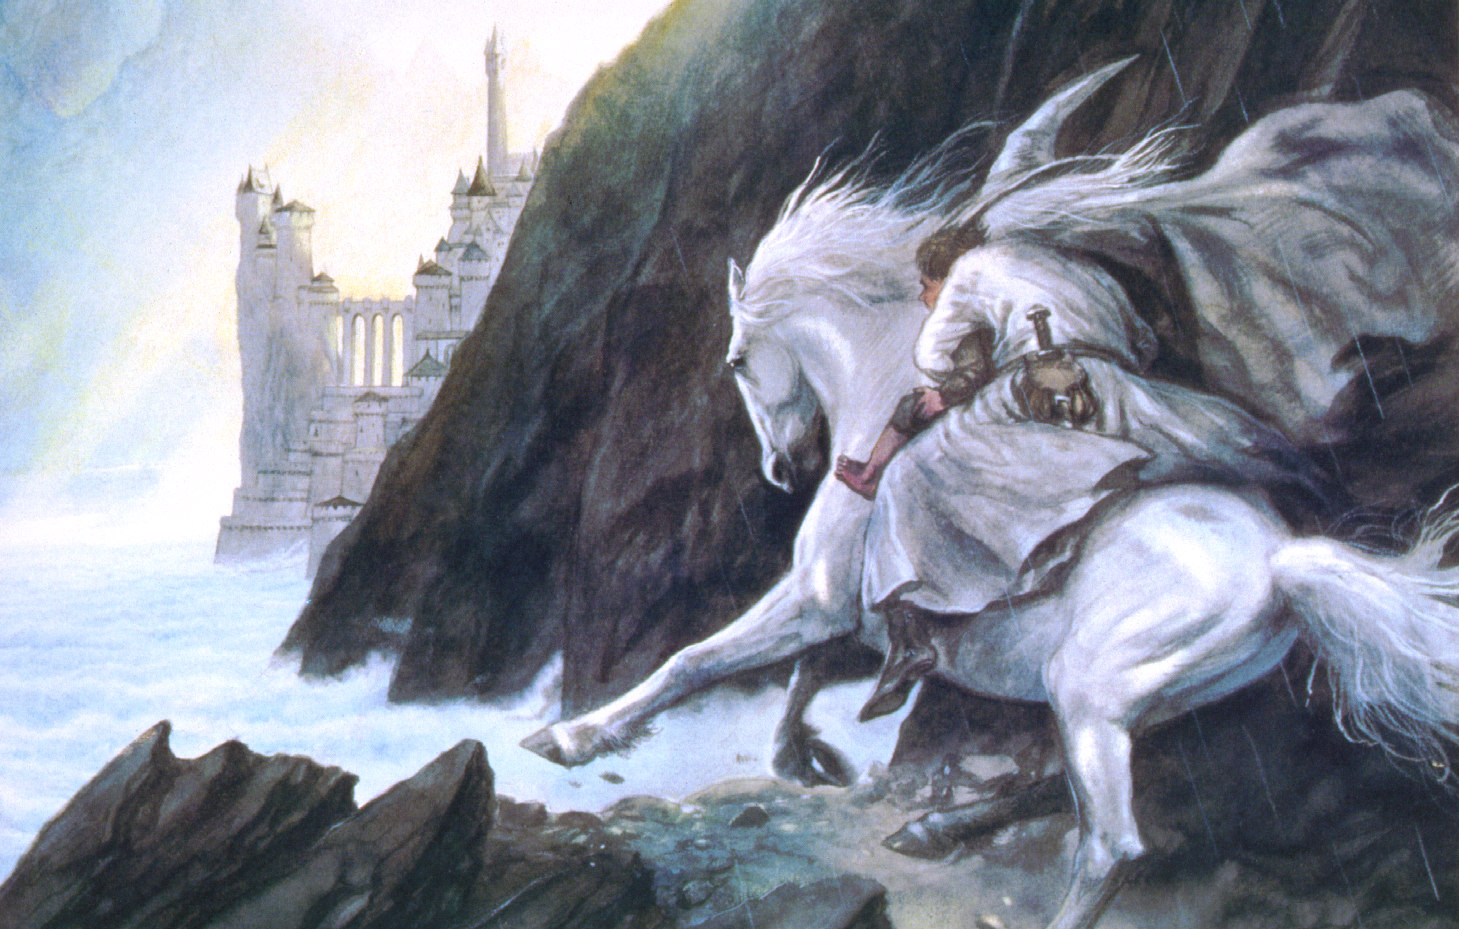 John Howe Drawings Gandalf Approaches The Guarded